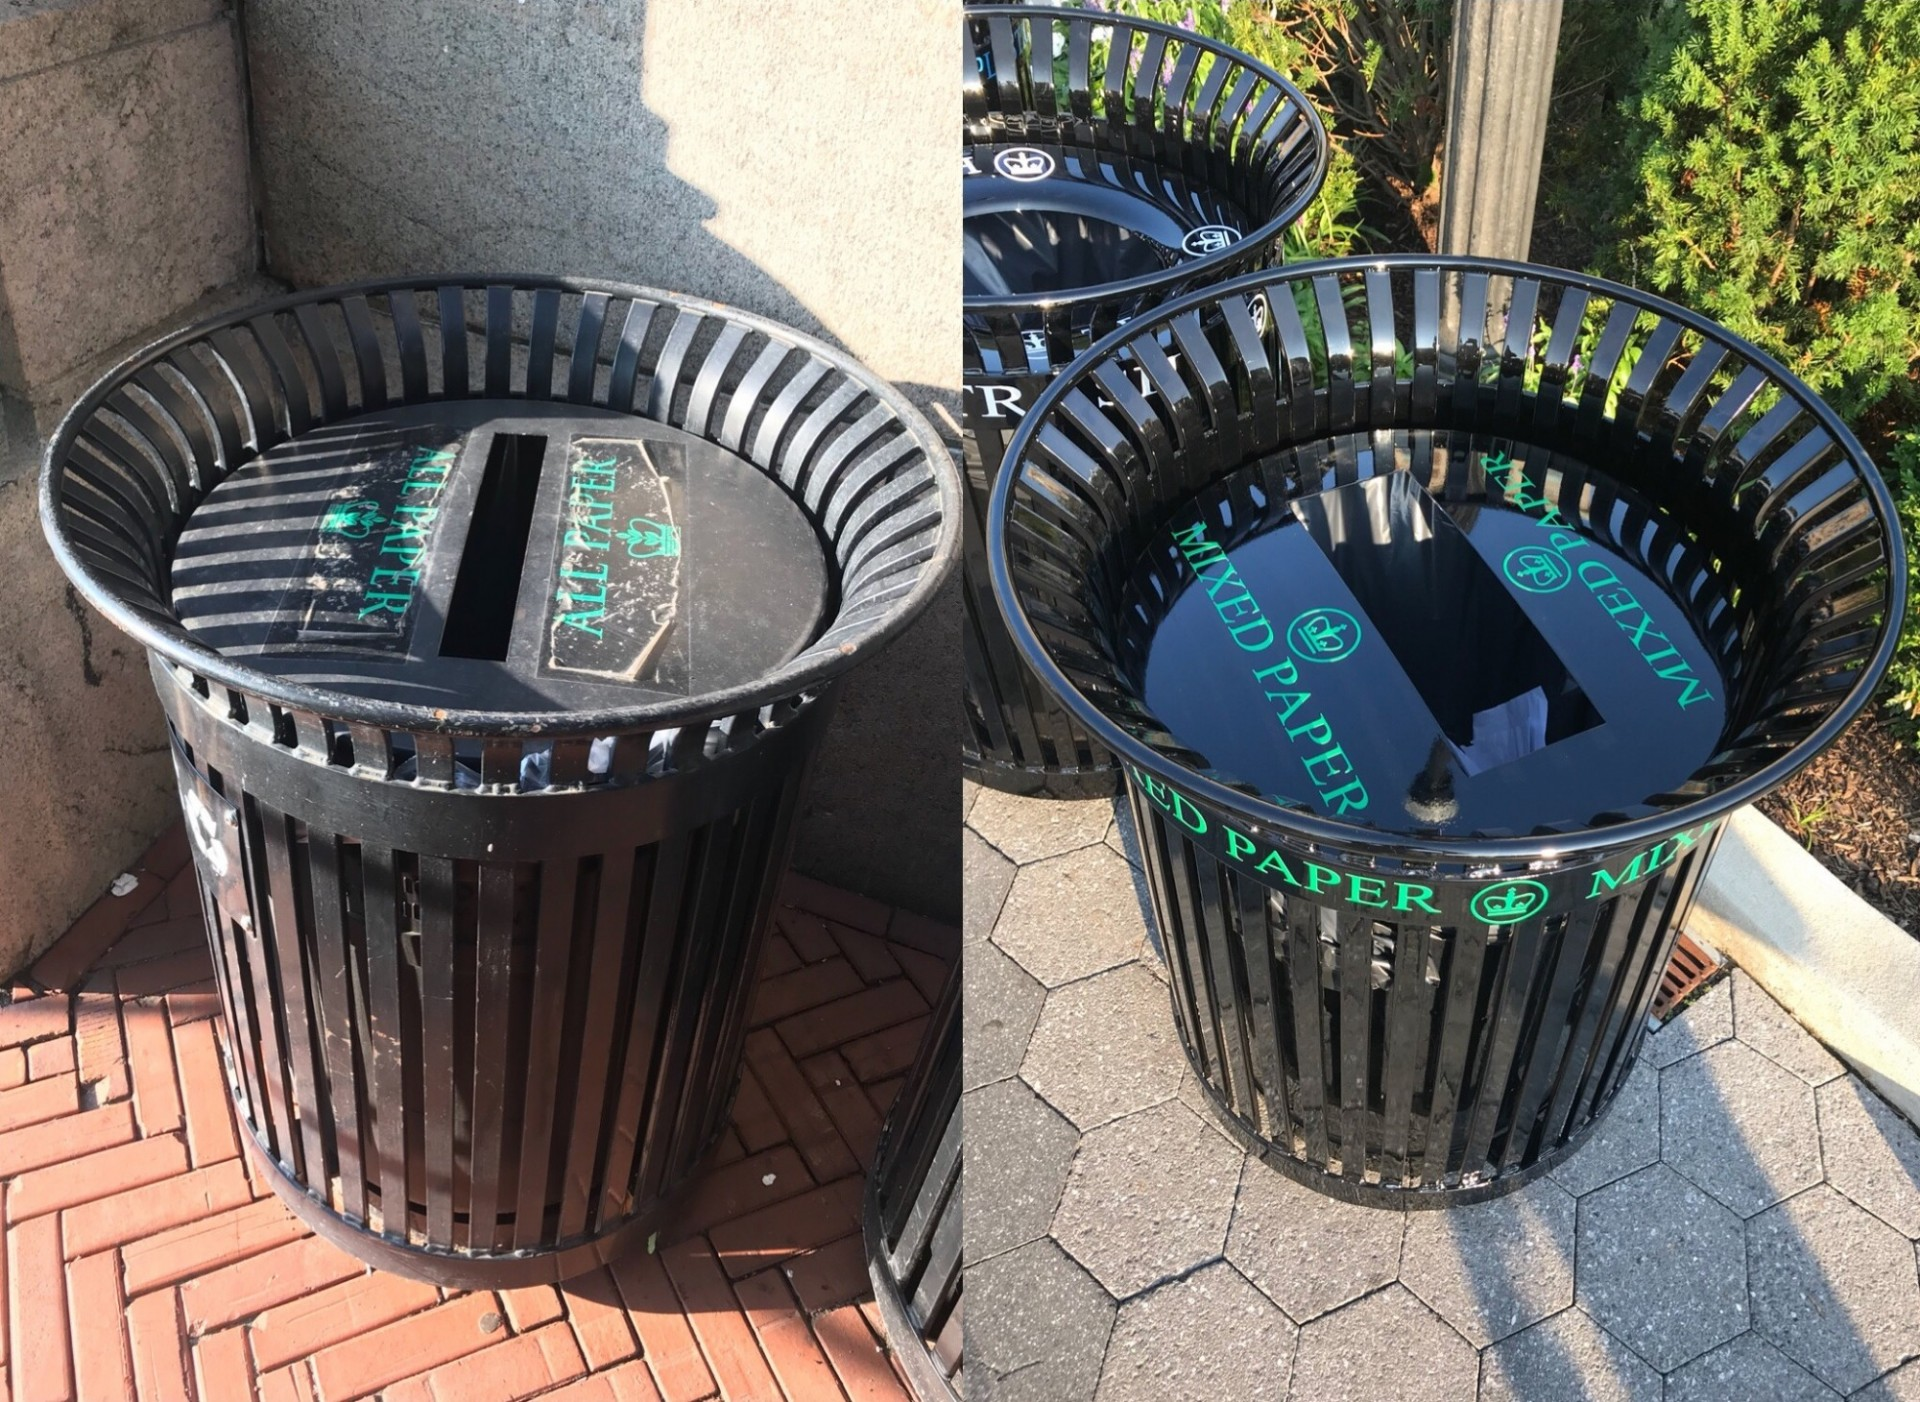 A before and after comparison of the paper receptacle